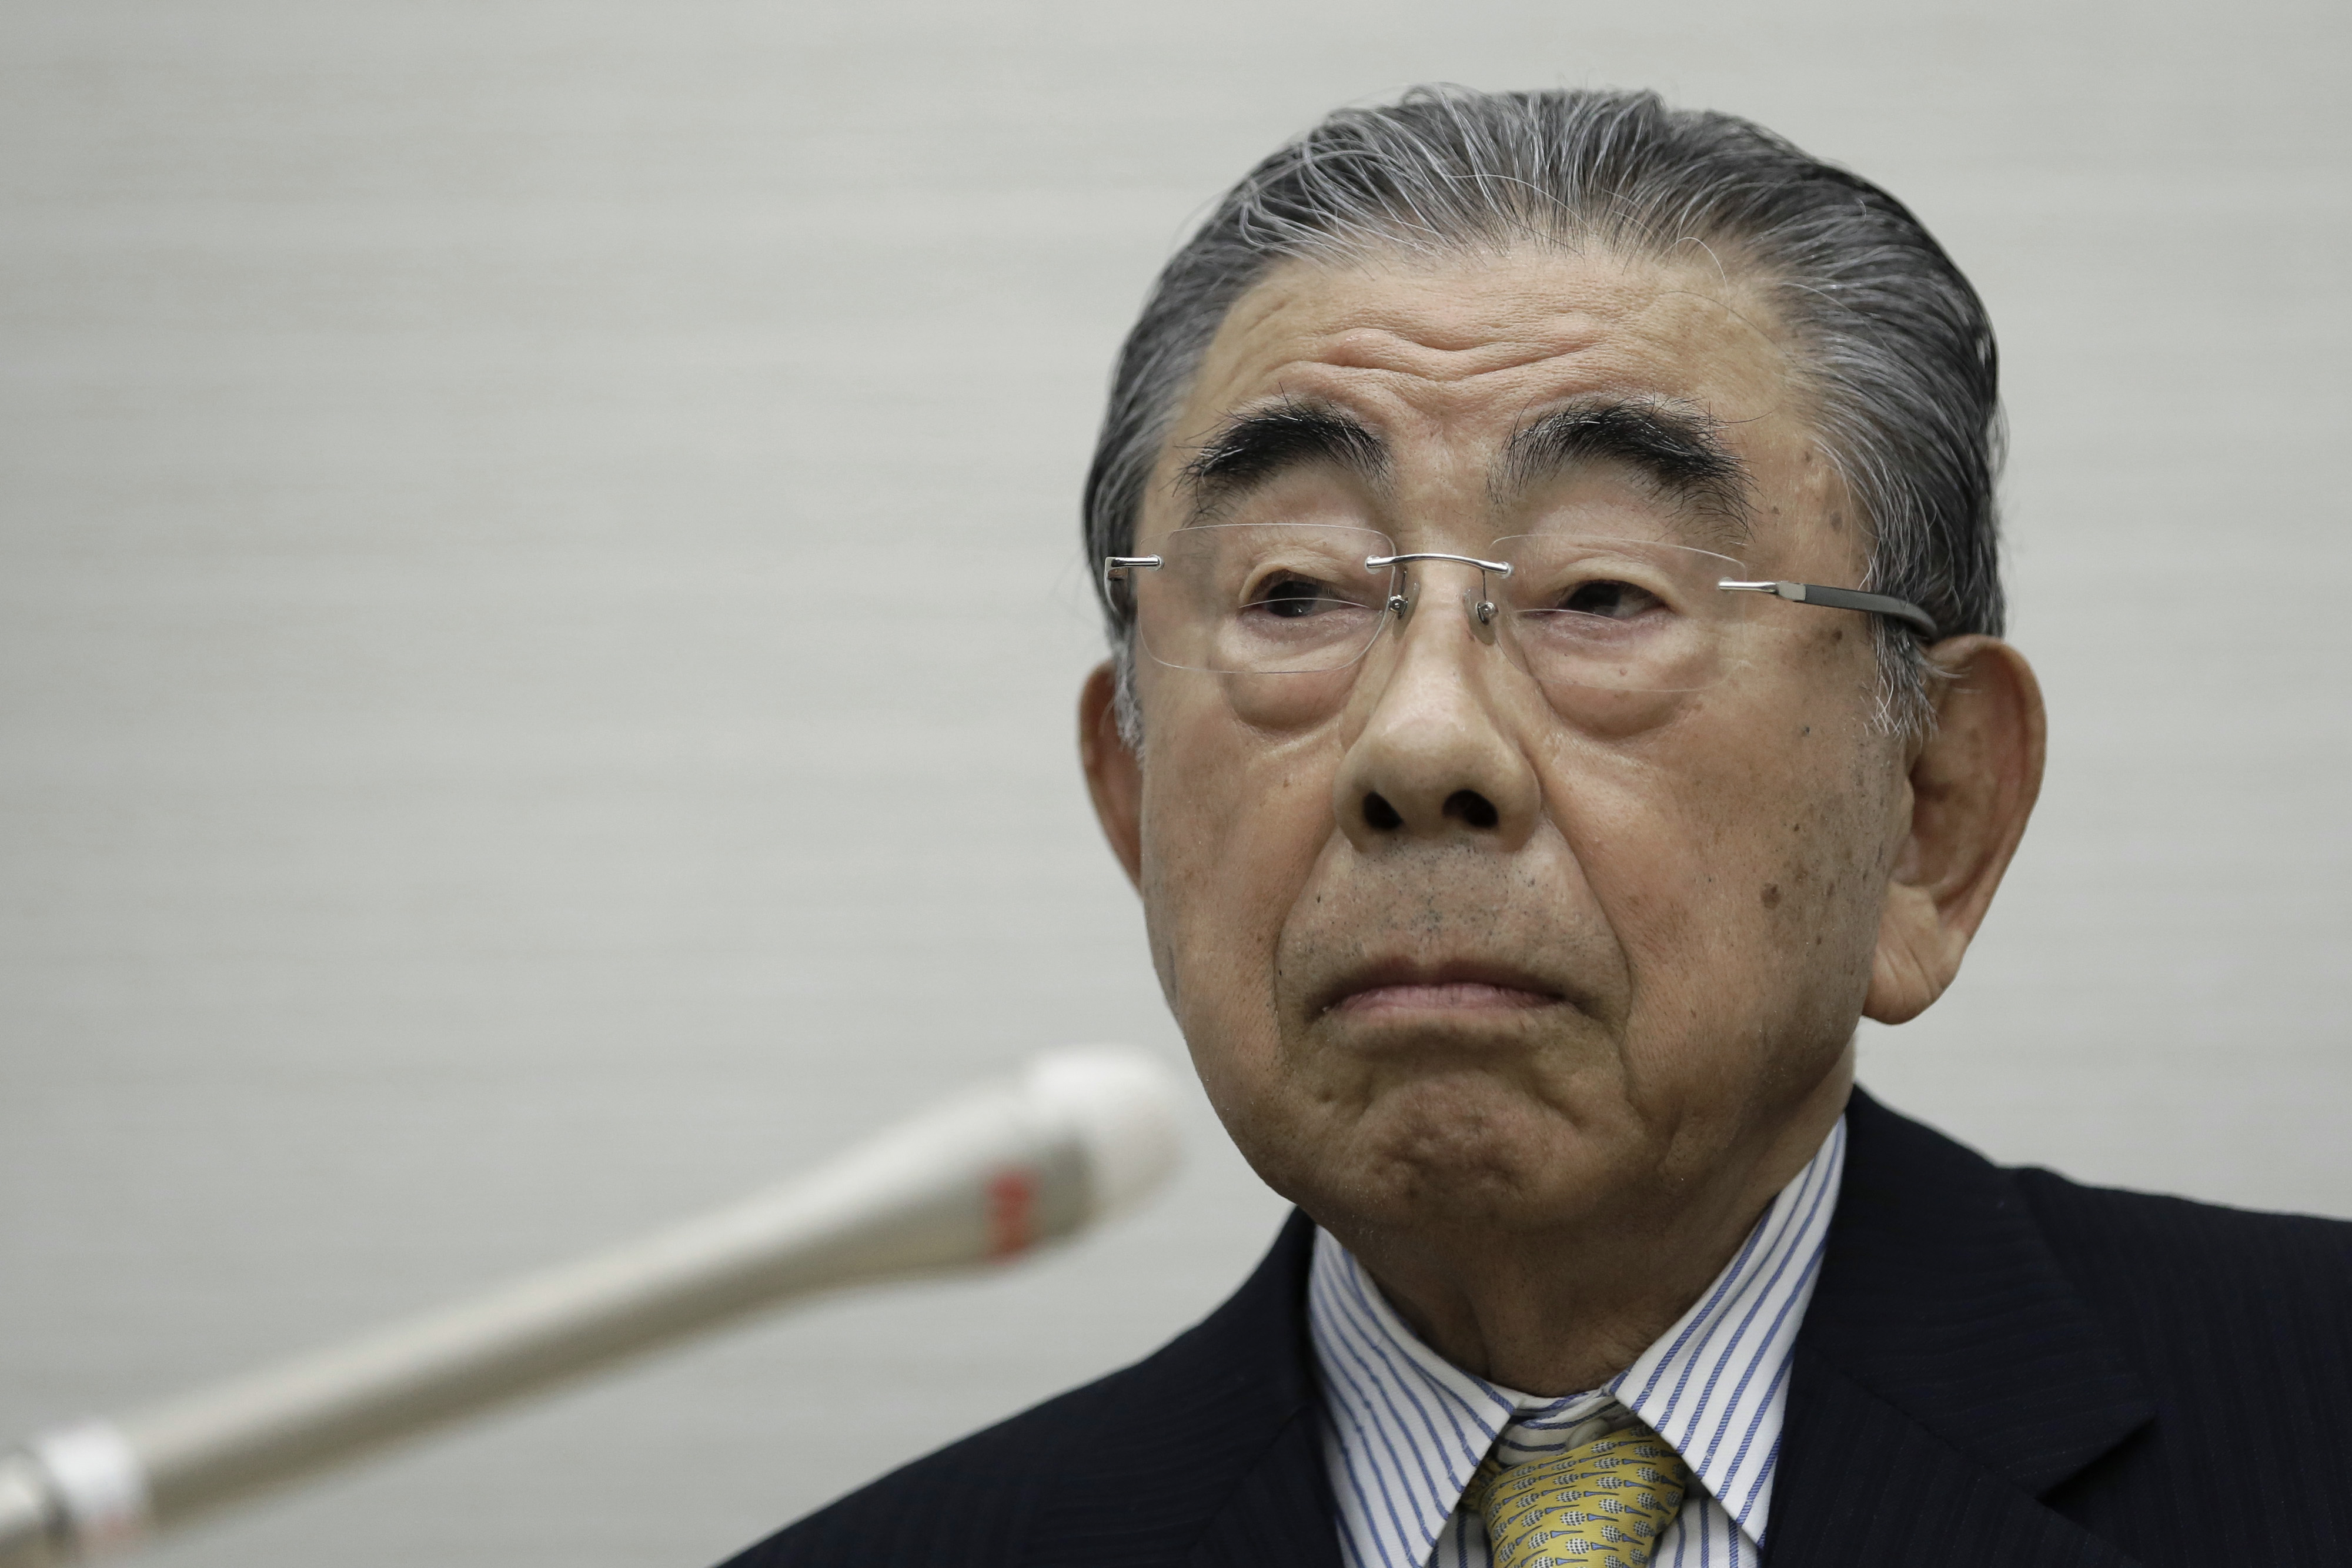 Toshifumi Suzuki, chairman and chief executive officer of Seven & I Holdings Co., pauses during a news conference in Tokyo, Japan, on Thursday, April 7, 2016.